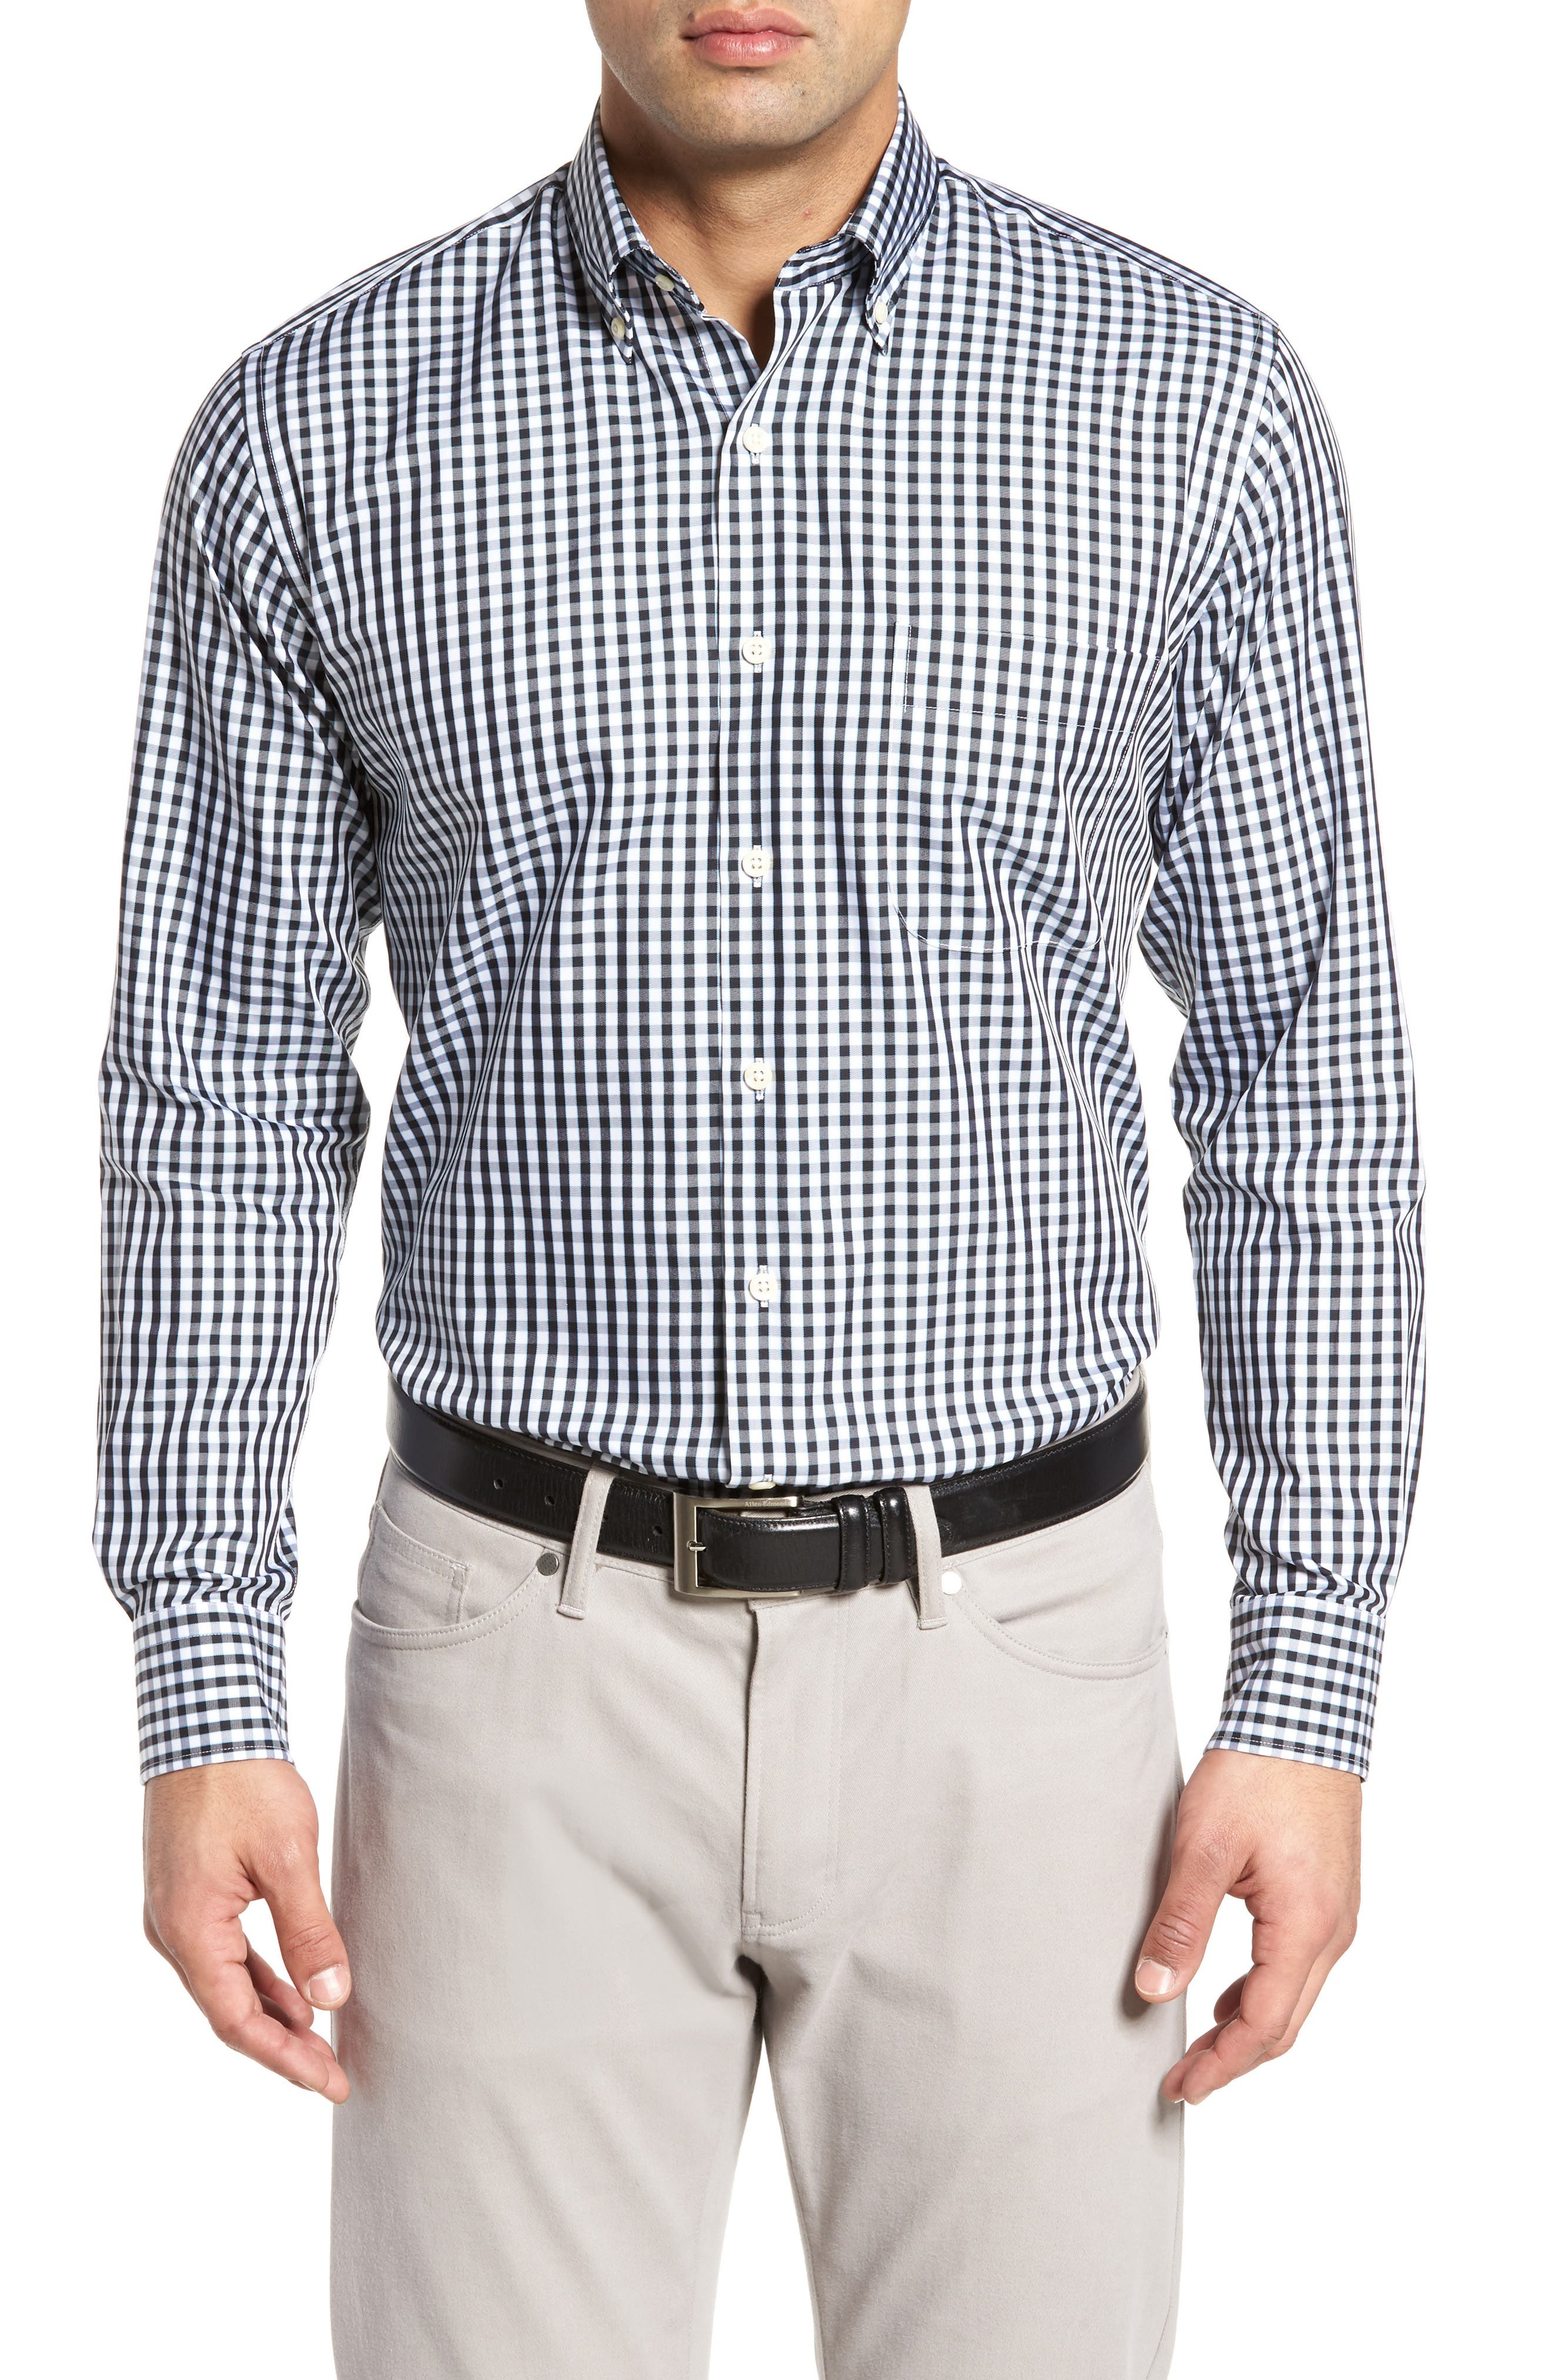 Black Sand Classic Fit Gingham Check Sport Shirt,                         Main,                         color, Black